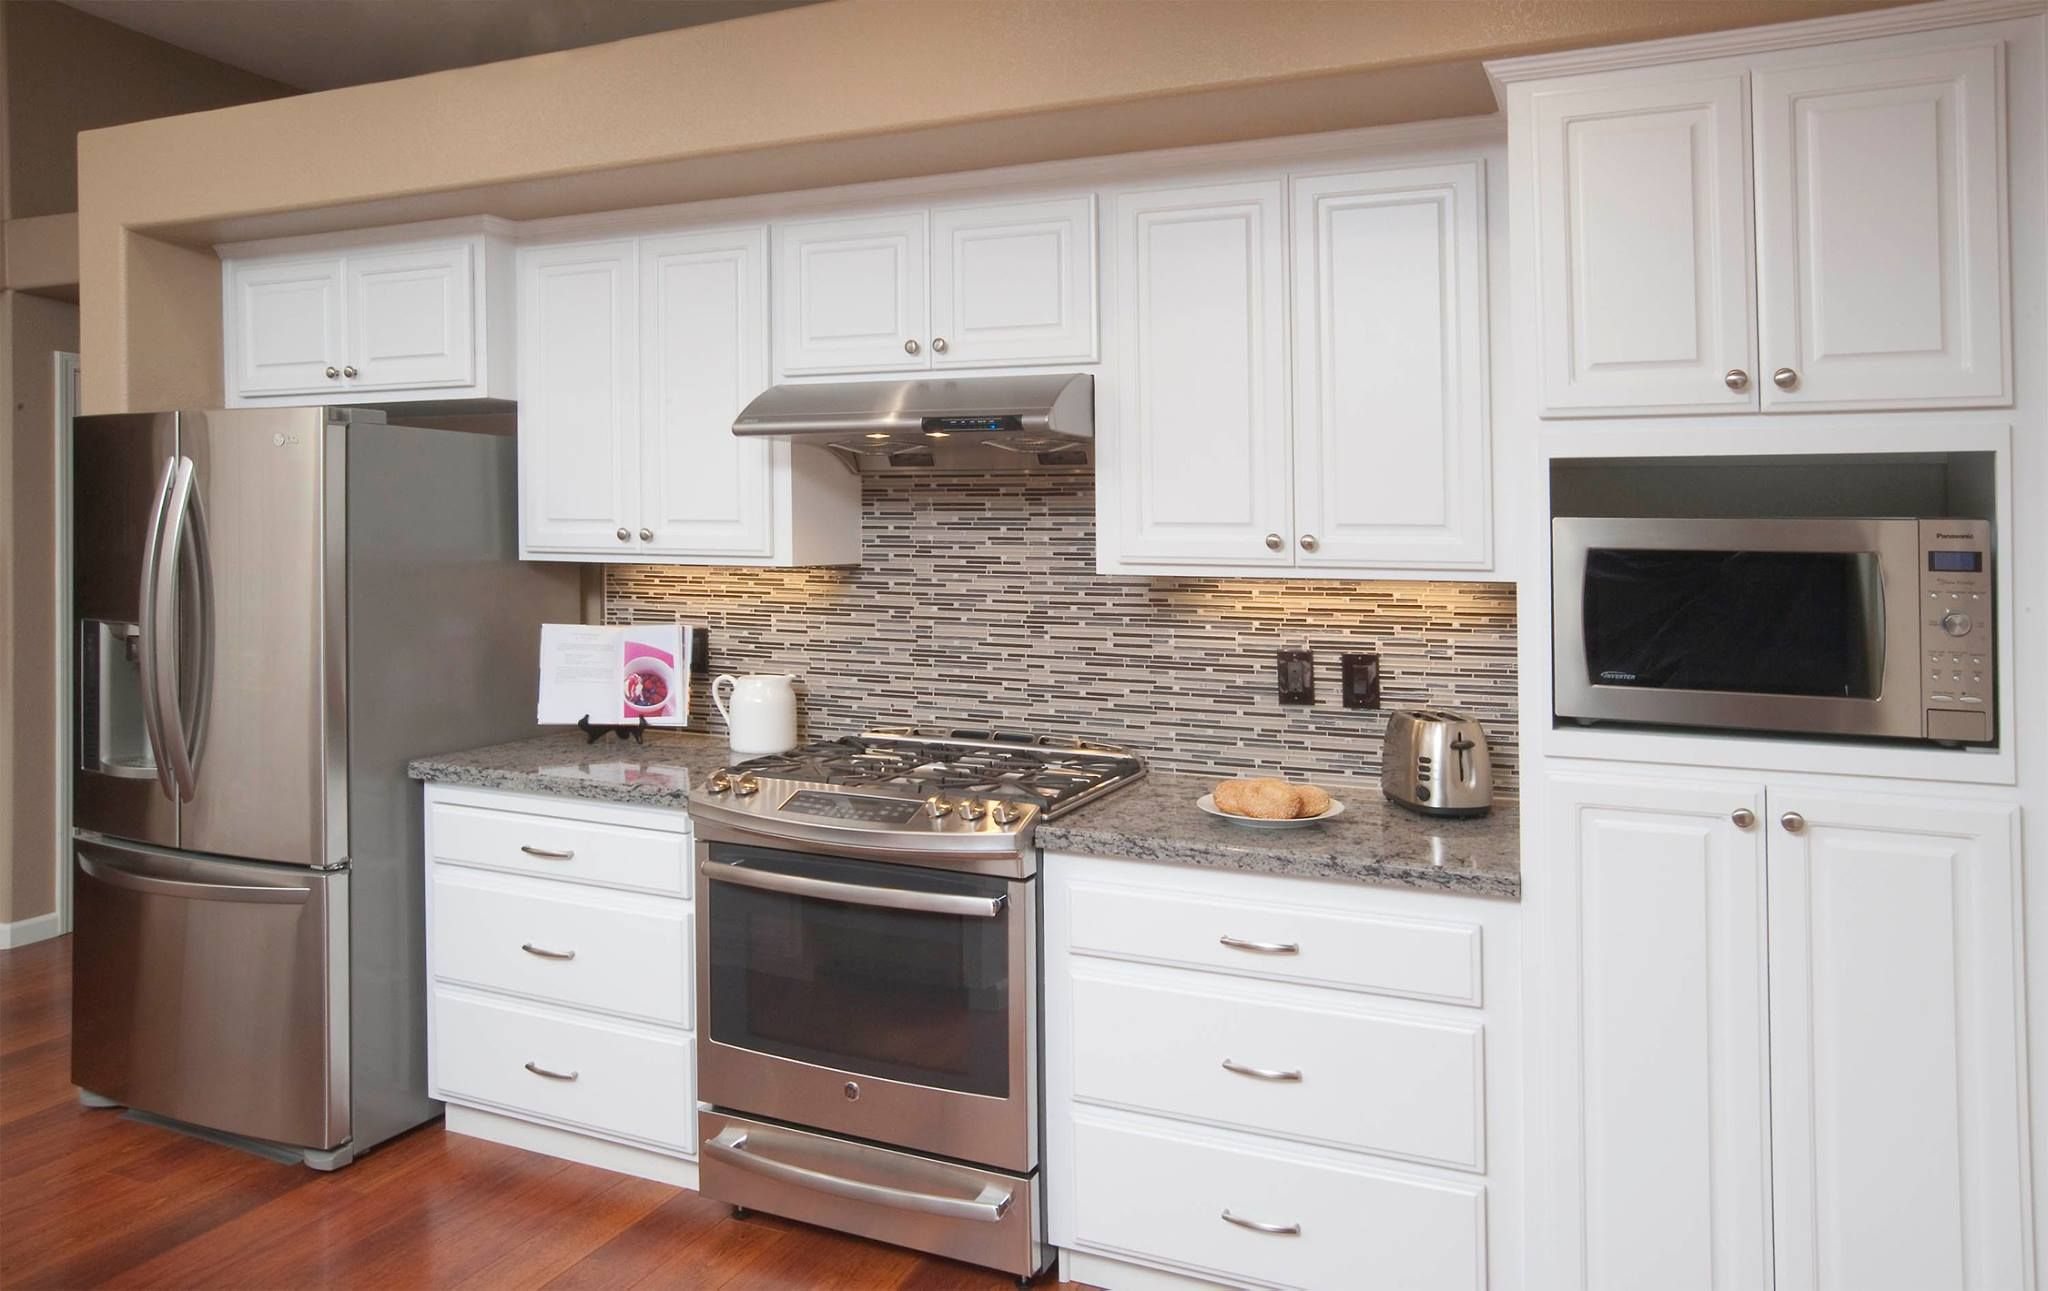 Check Out This Amazing Refacing Job By Kitchen Mart Featuring Our FS742  Door In 949 White